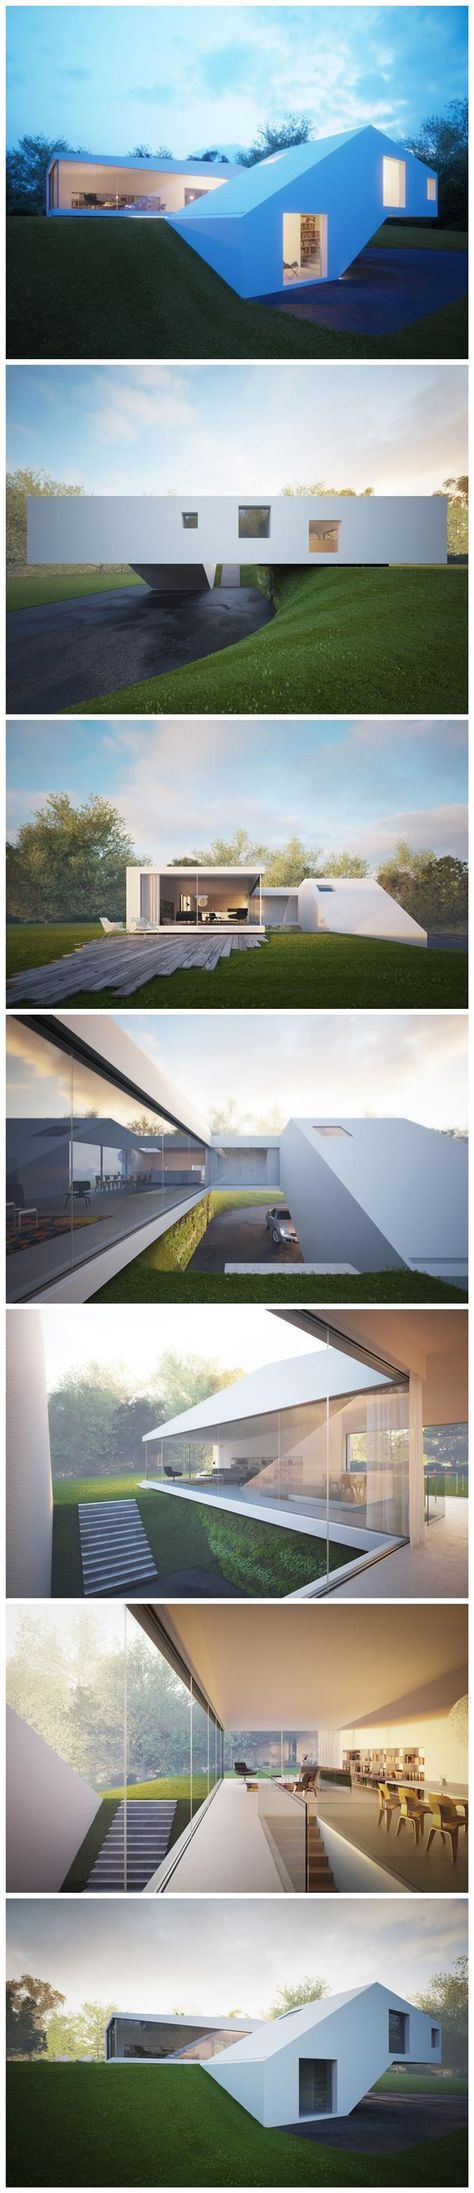 164 best Cool House images on Pinterest | Architecture ...